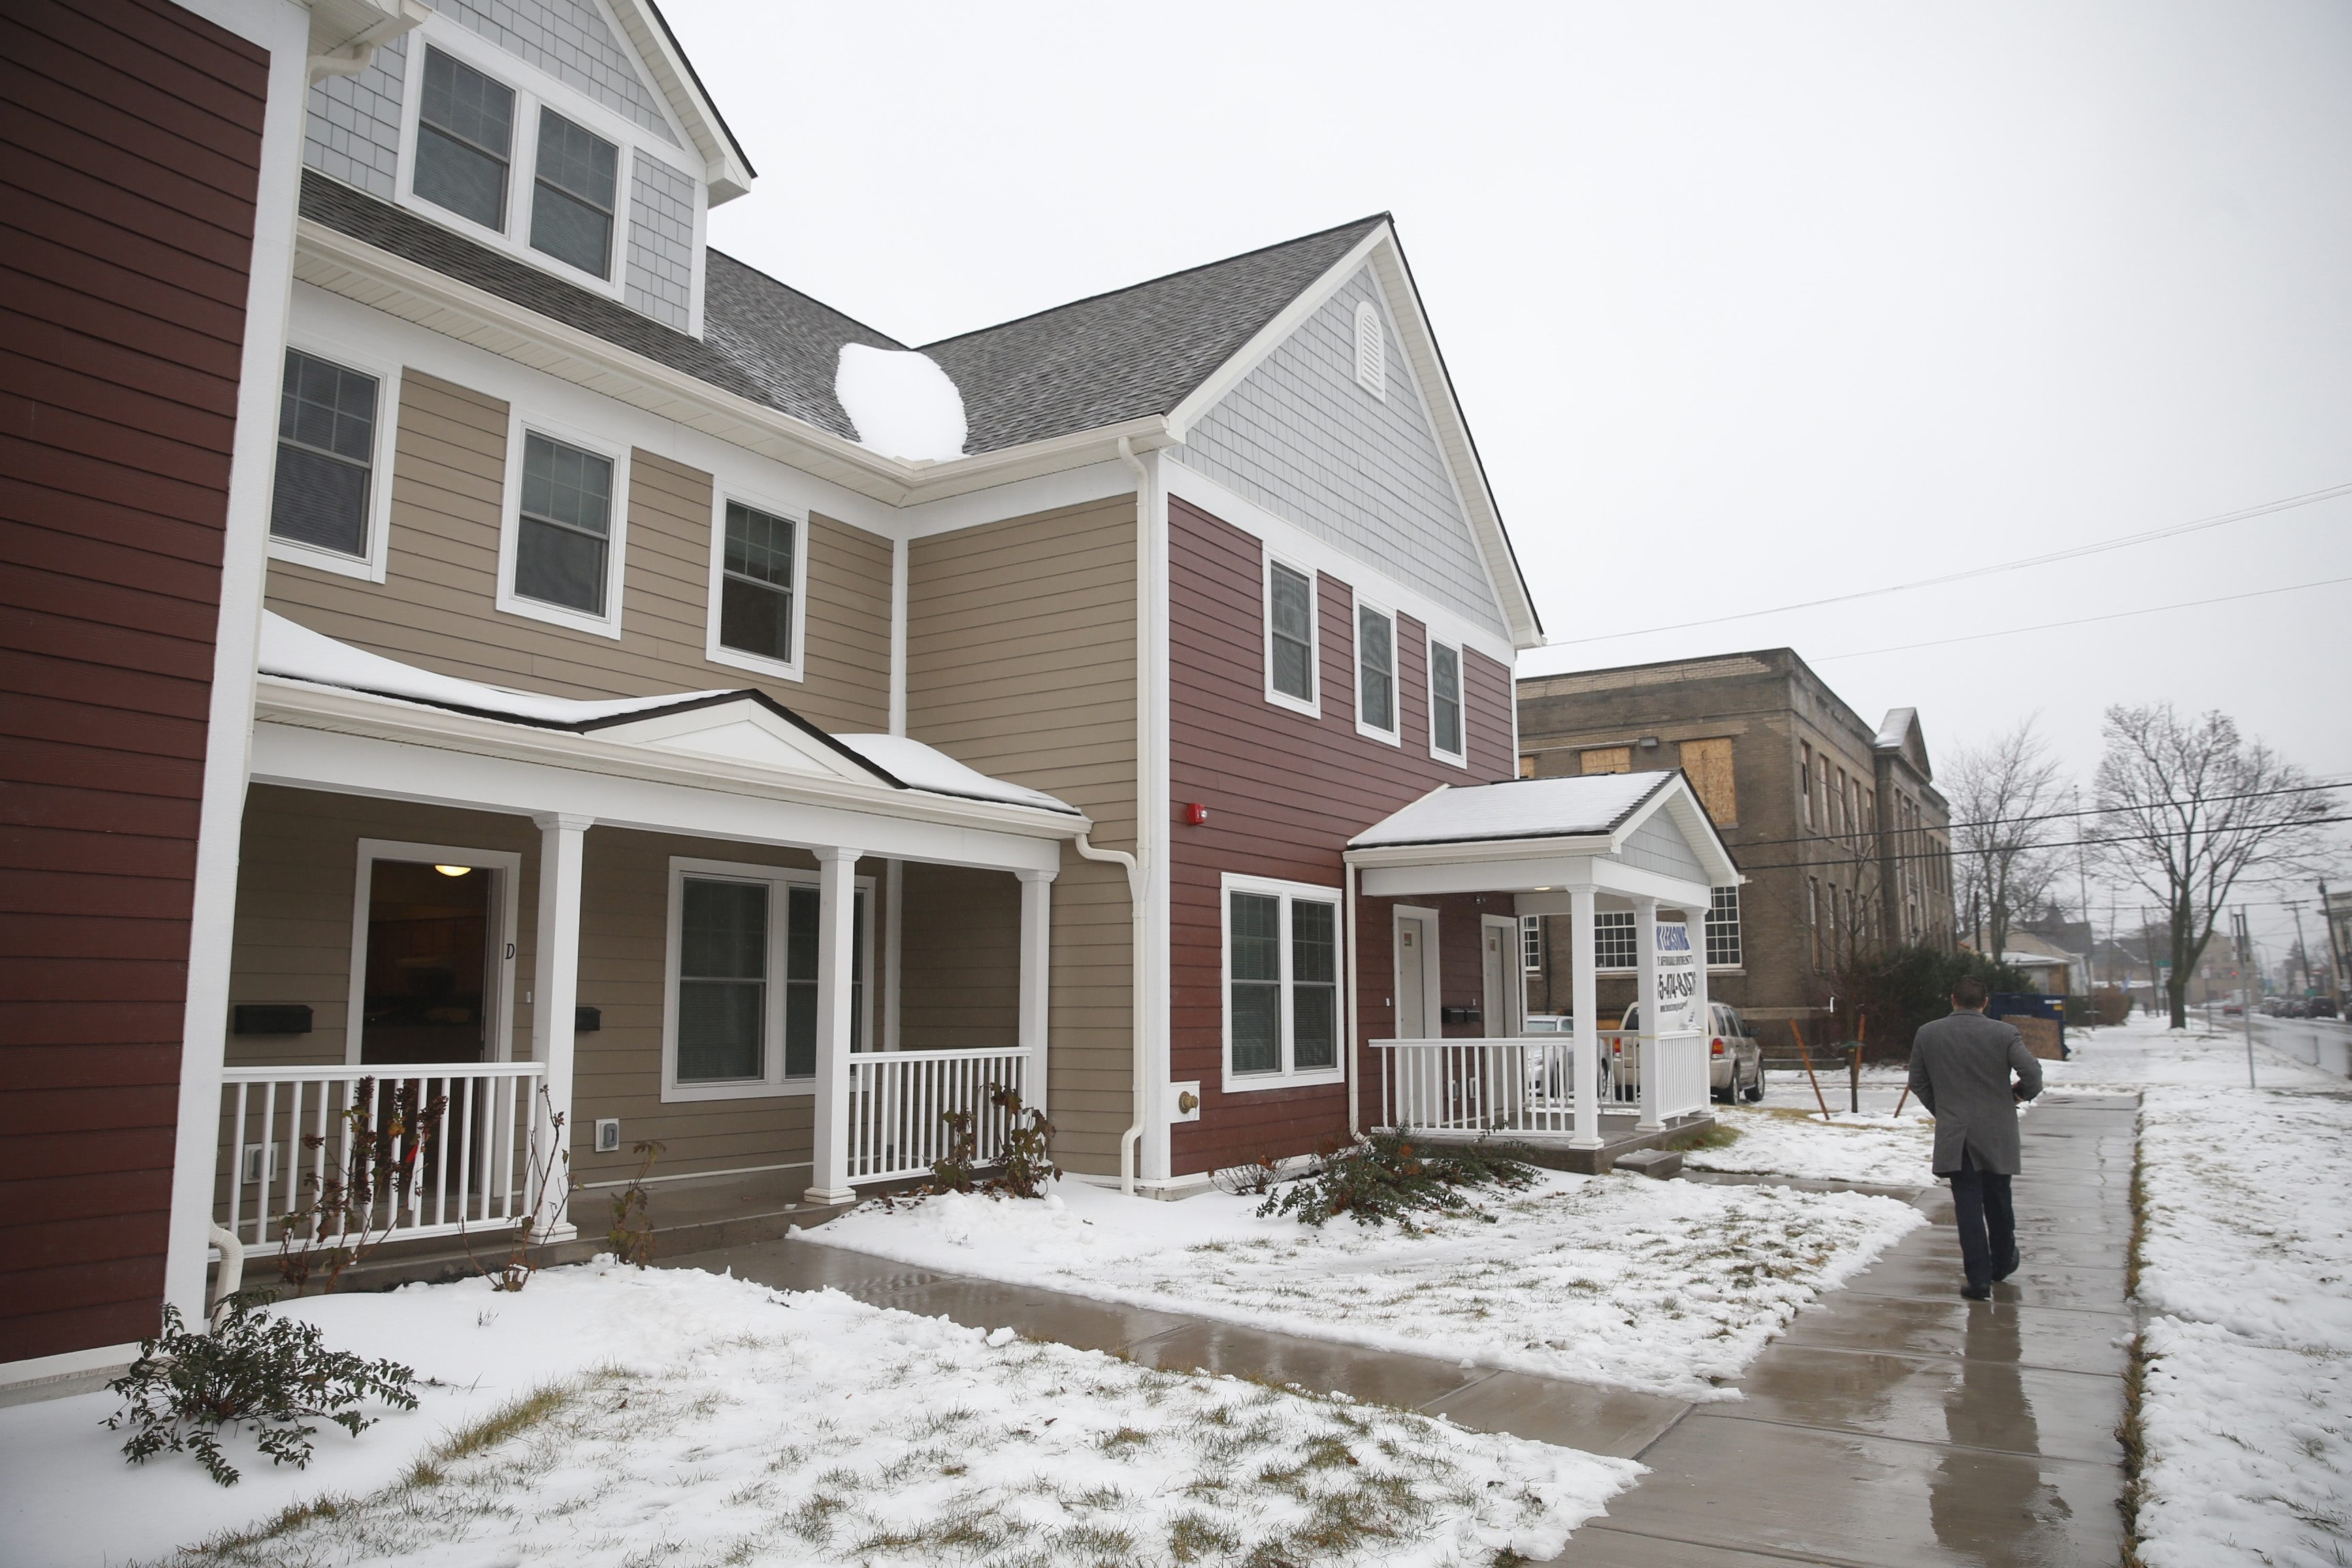 Seven new buildings are part of the 41-unit Walnut Avenue Homes project, which also includes the long-vacant Board of Education building. There will be 12 apartments with one bedroom, 18 with two and 11 with three.